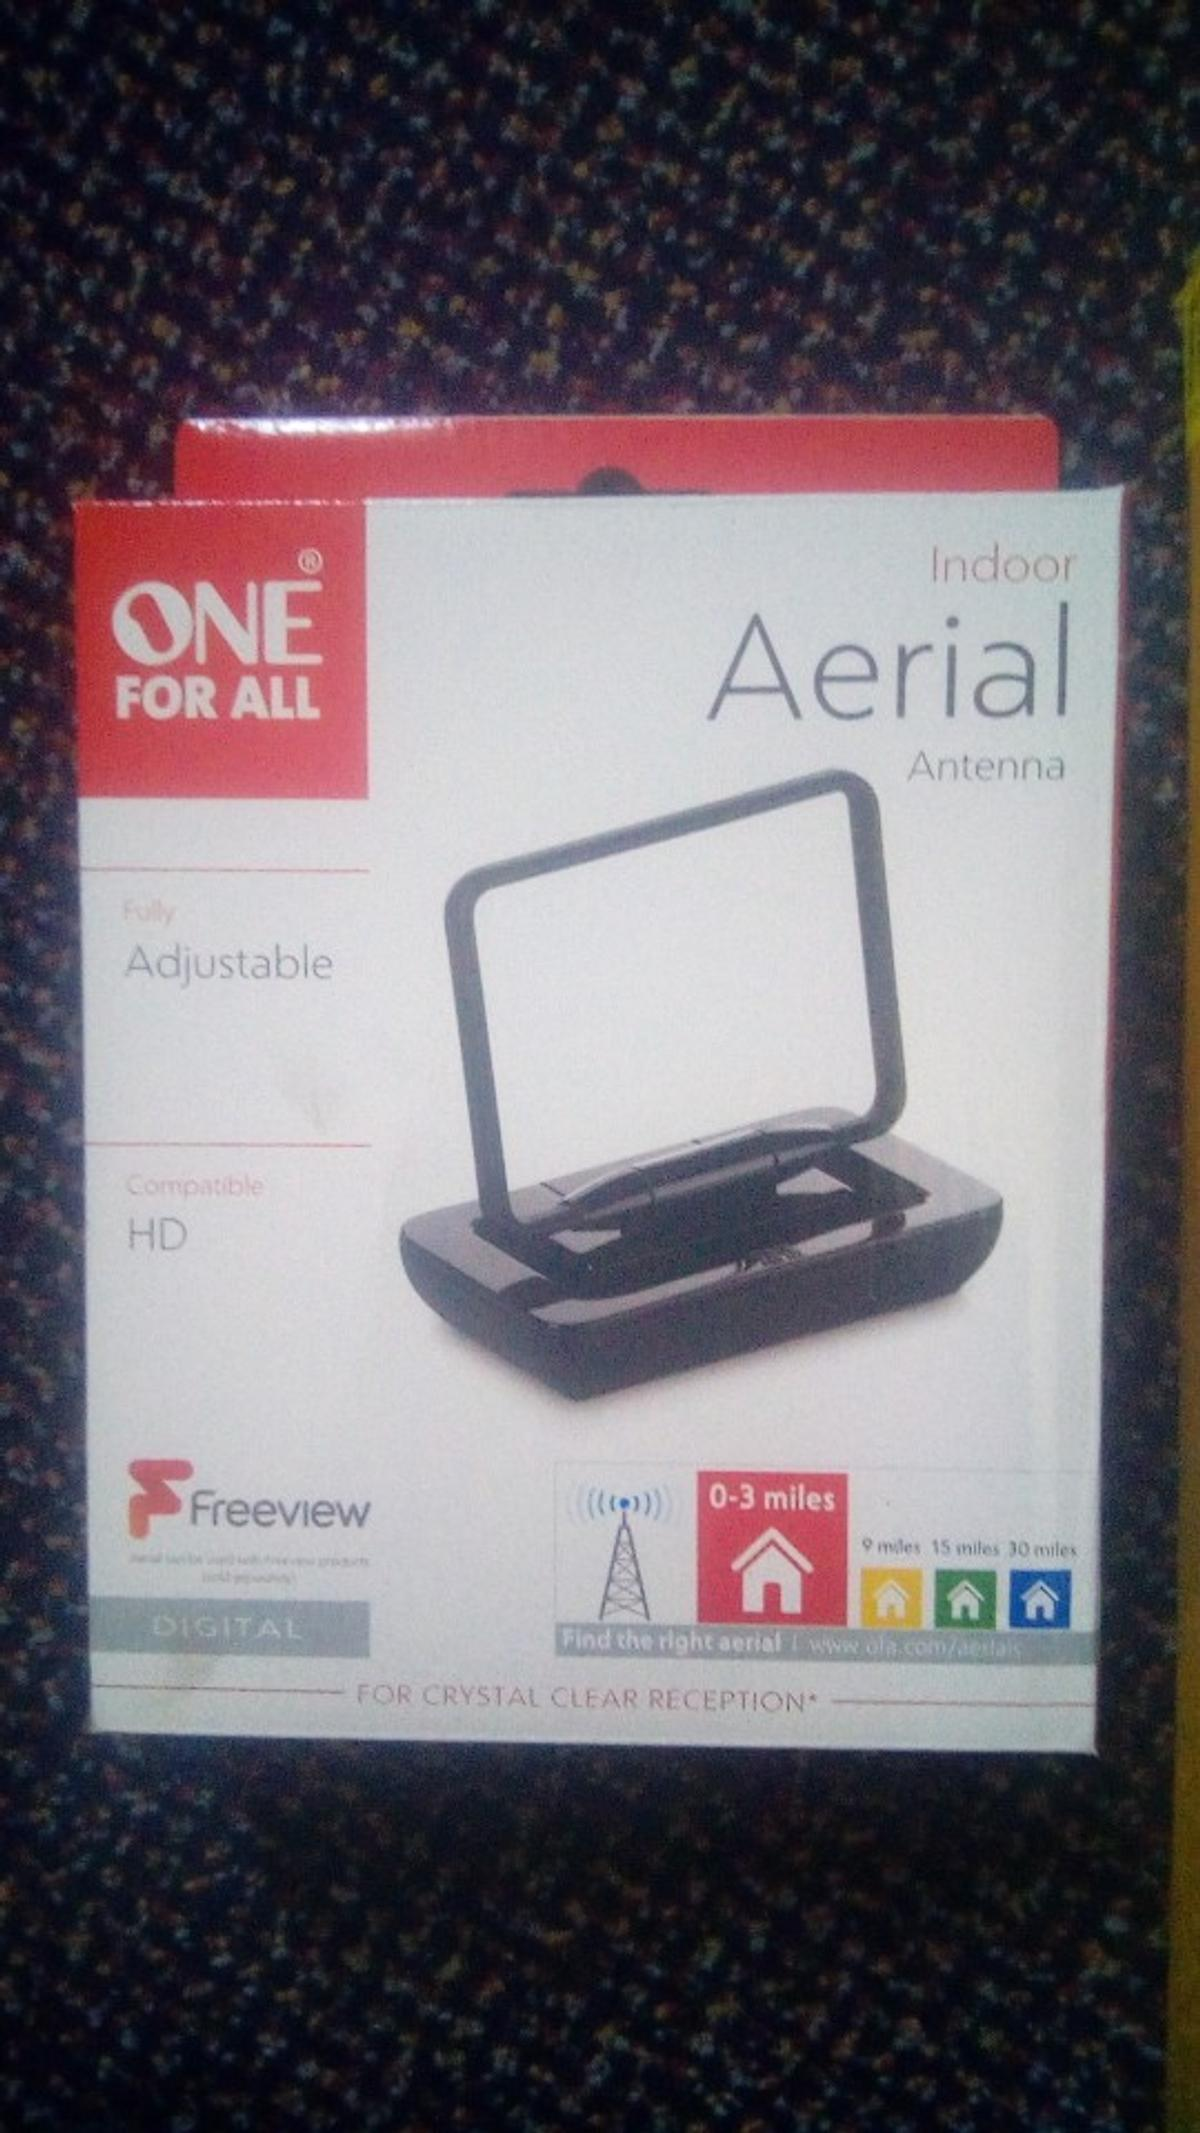 brand new 19 inch HD ready TV made by Bush and one for all TV aerial brand new in box. As seen in Argos 99.99.